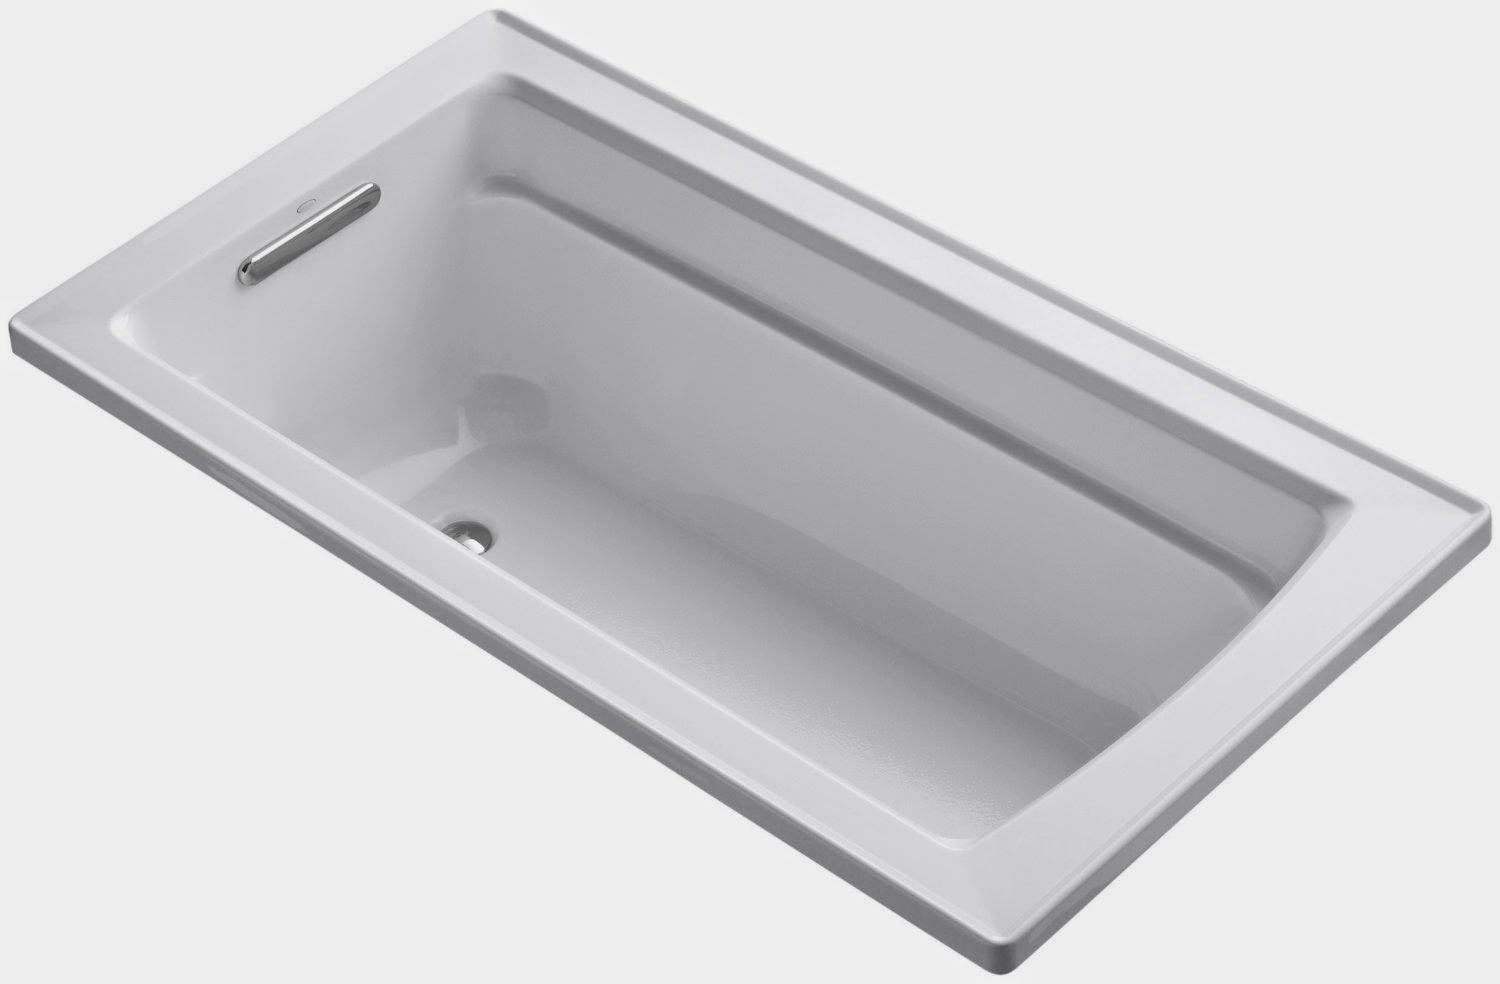 Top rate soaking bath tub | Most Popular ...: Kohler Drop ...